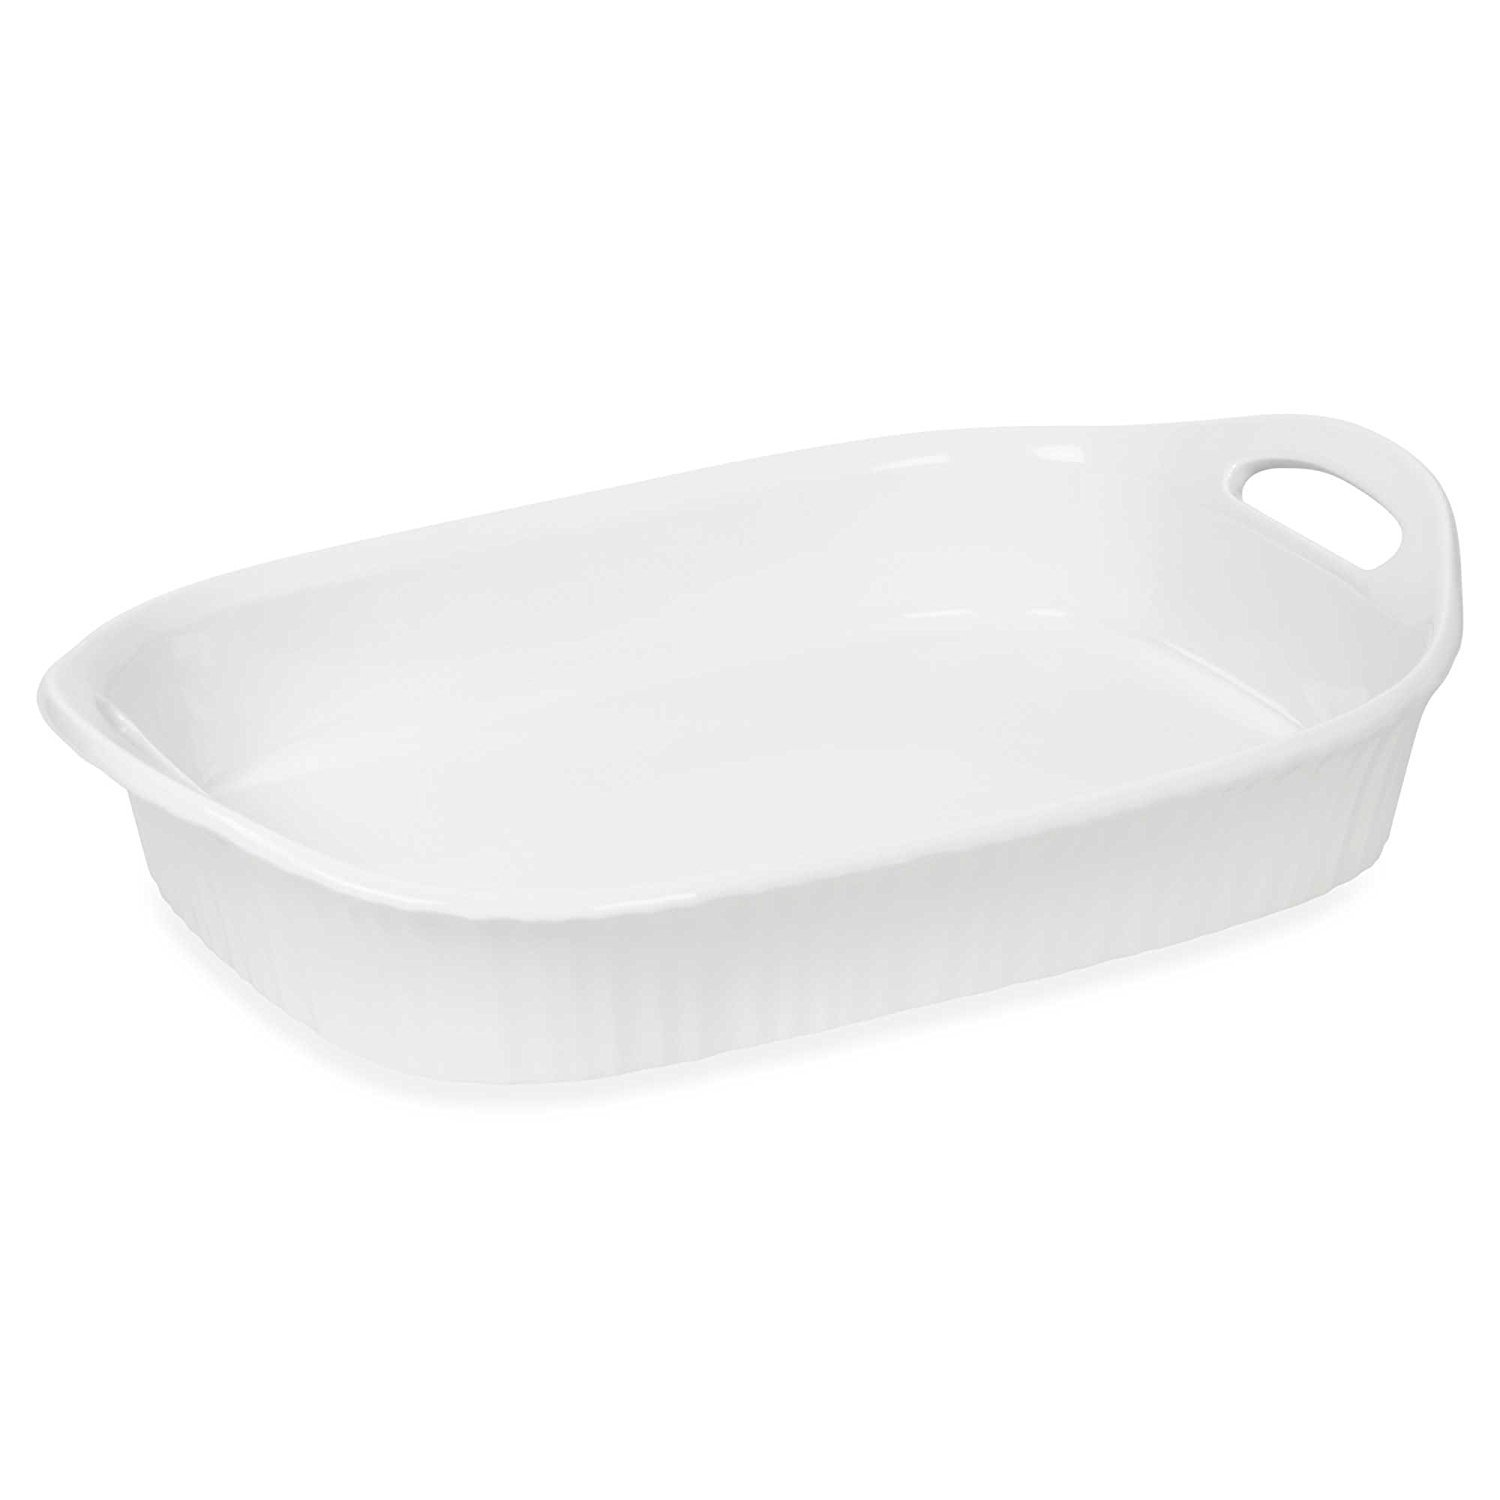 CorningWare French White III 3-Quart Ceramic Oblong Casserole Dish with Sleeve | Oven, Microwave, Refrigerator and Freezer Safe by CorningWare